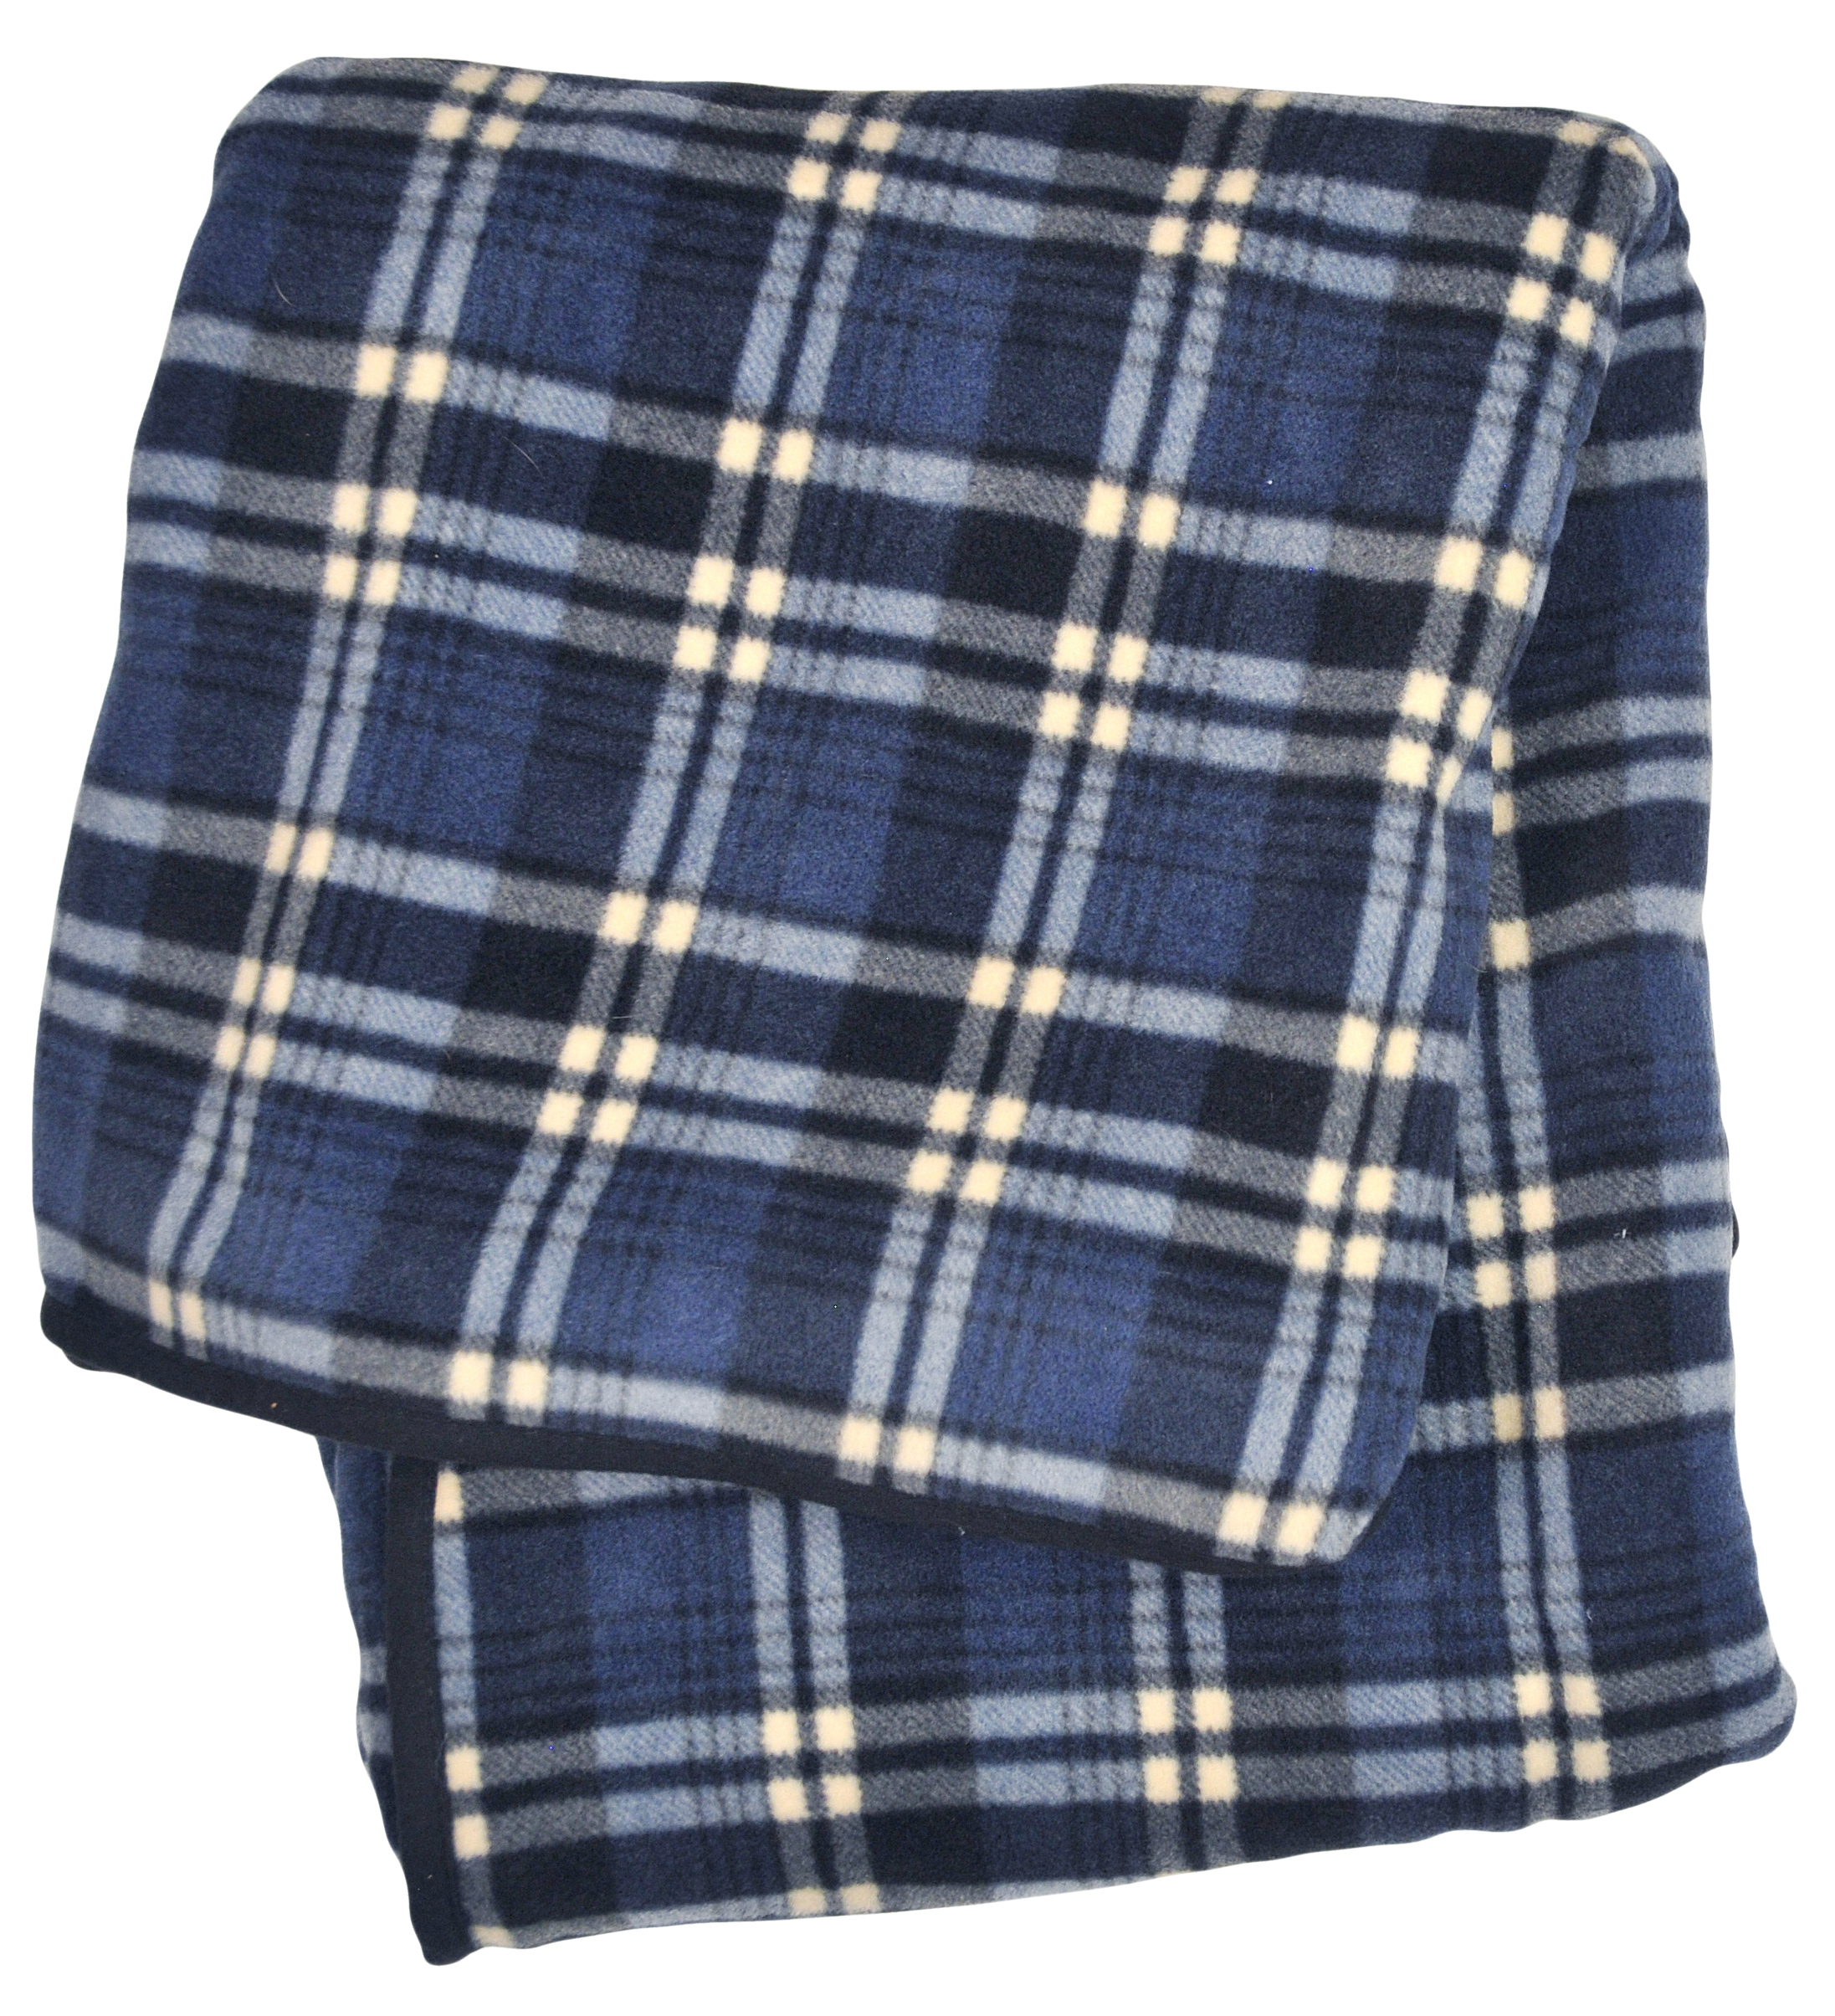 Stillwater Supply Fleece Blanket In-A-Bag